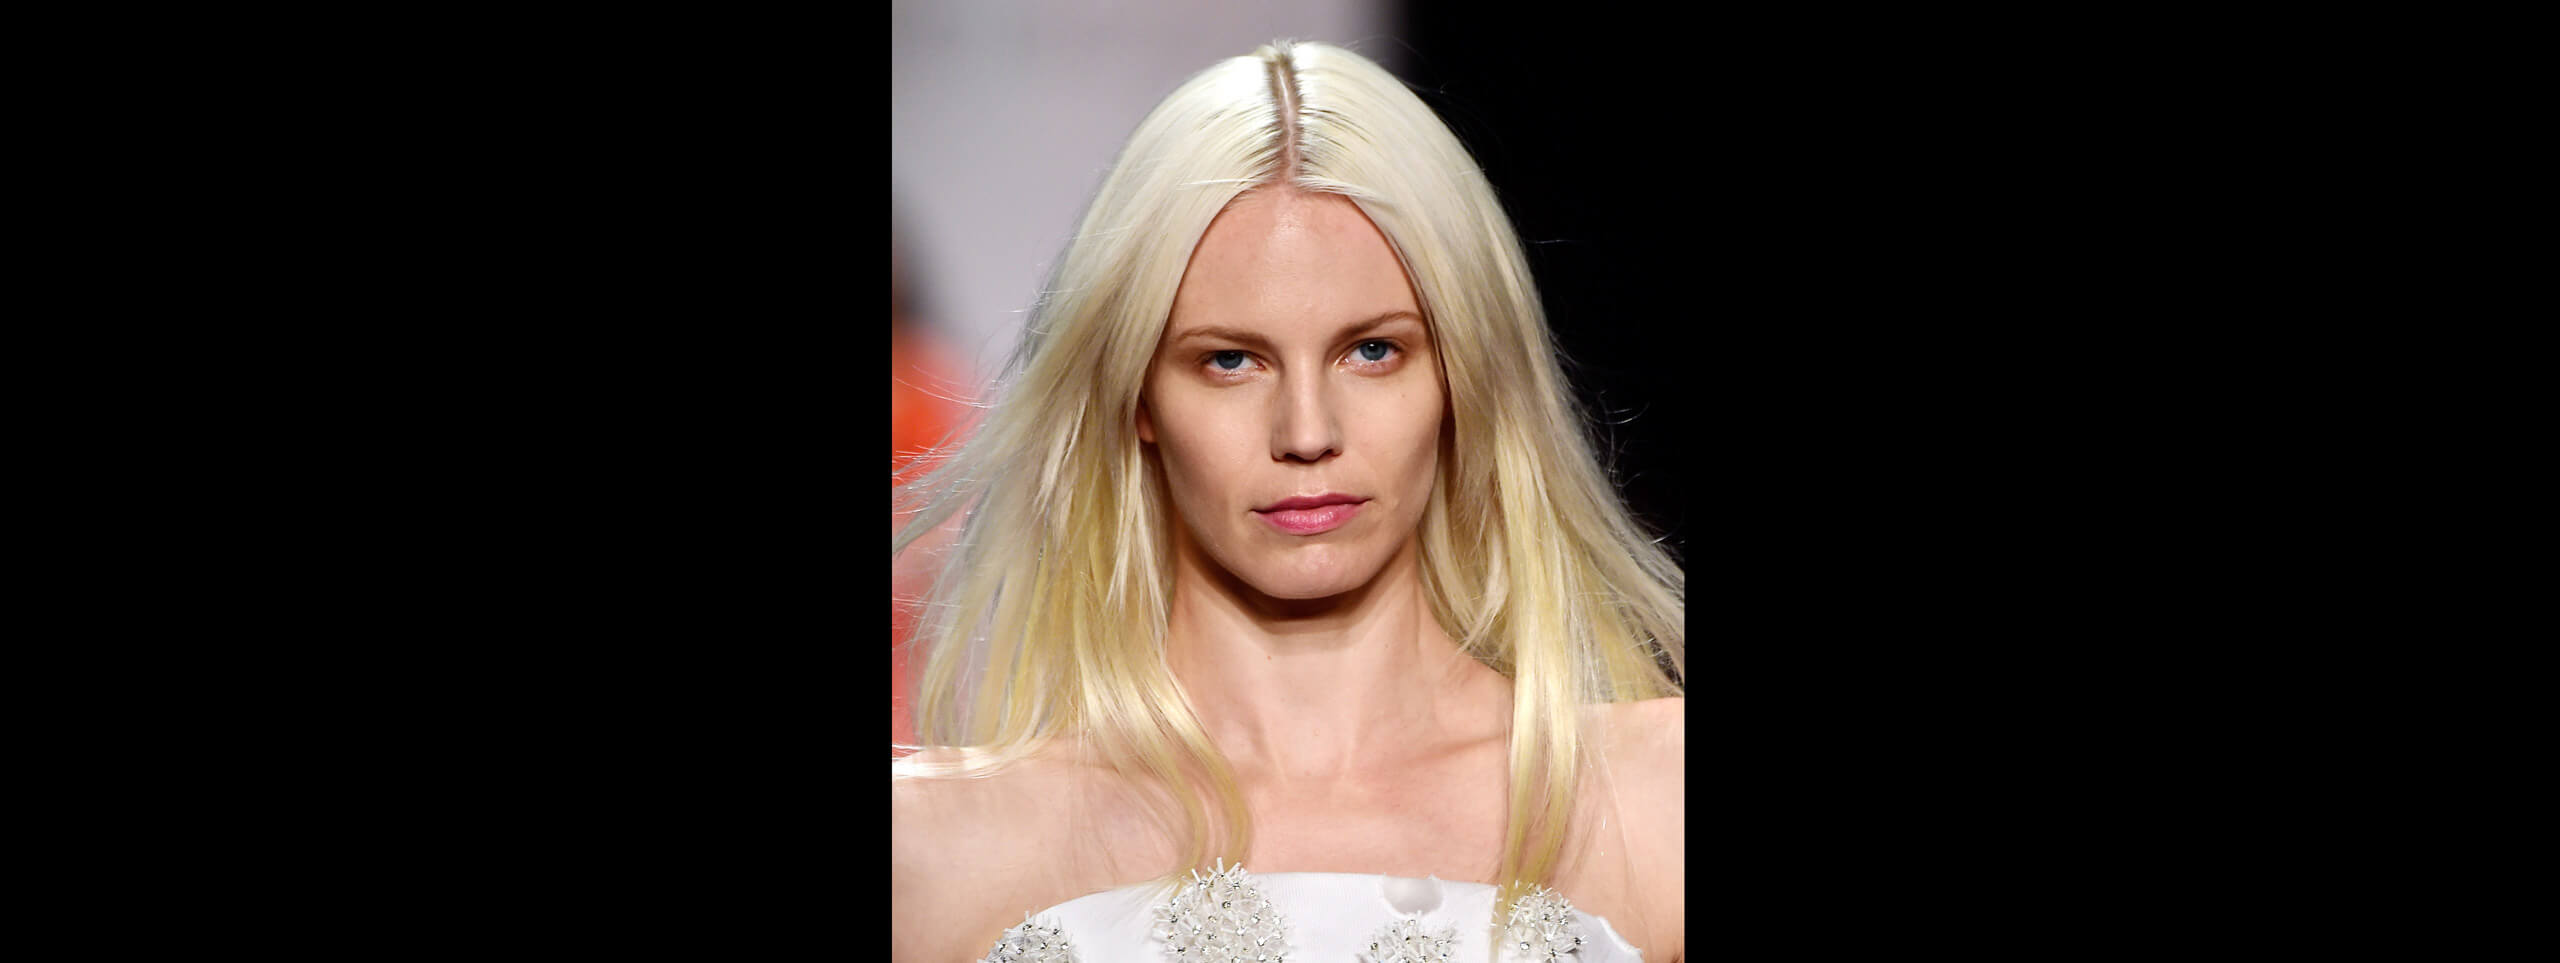 hair-colors-autumn-winter-2015-2016